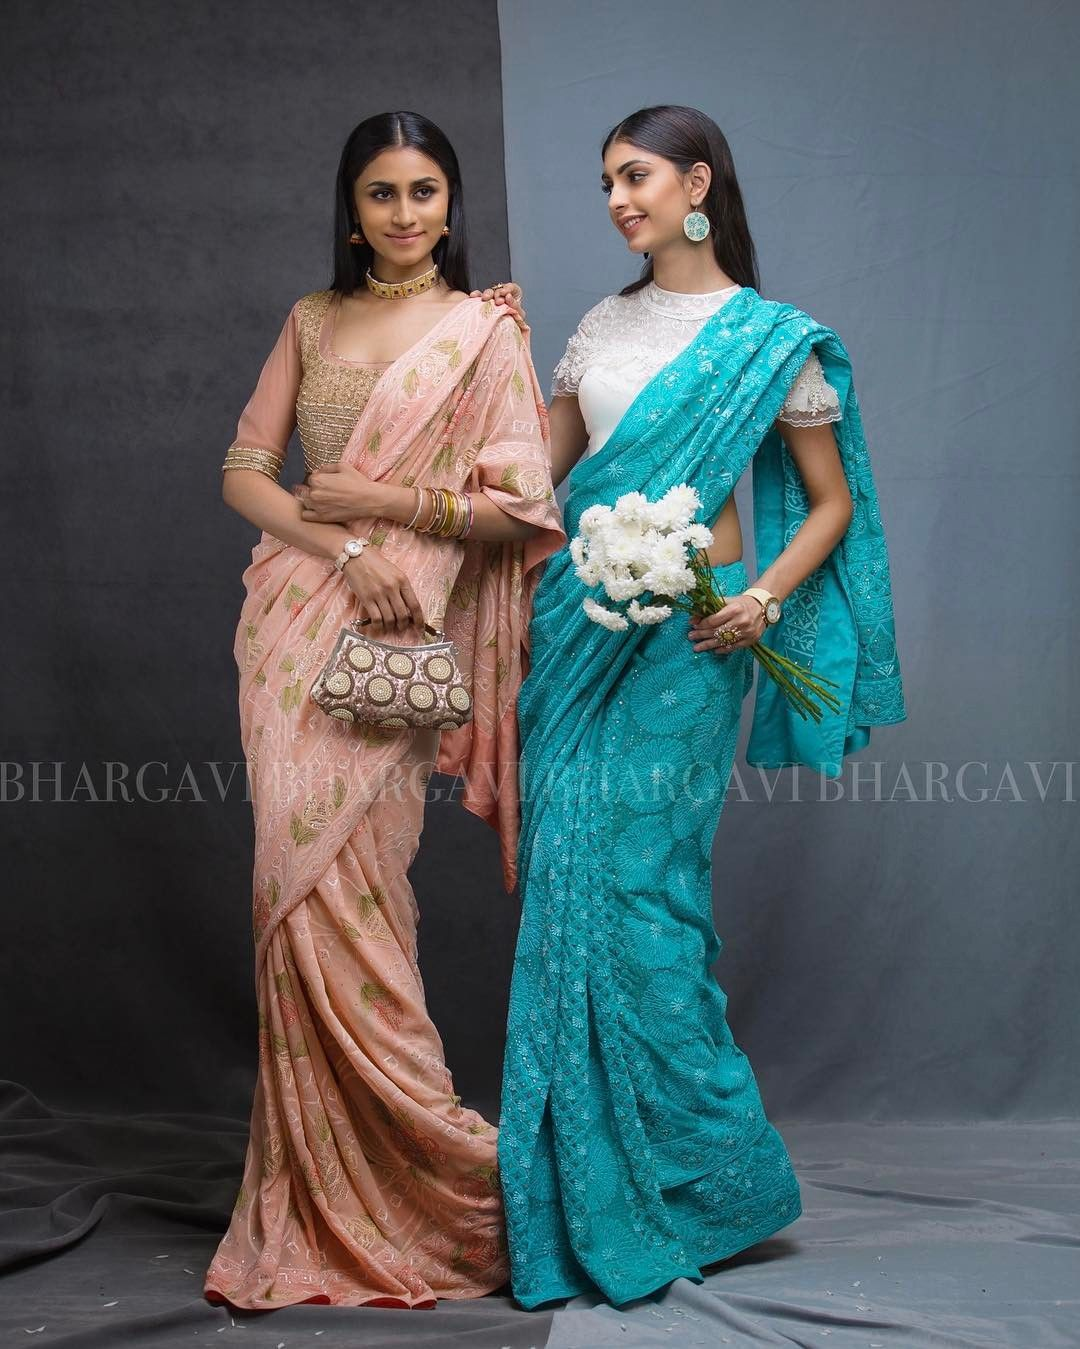 11 Designer Saree Ideas To Pick For Wedding Reception Parties